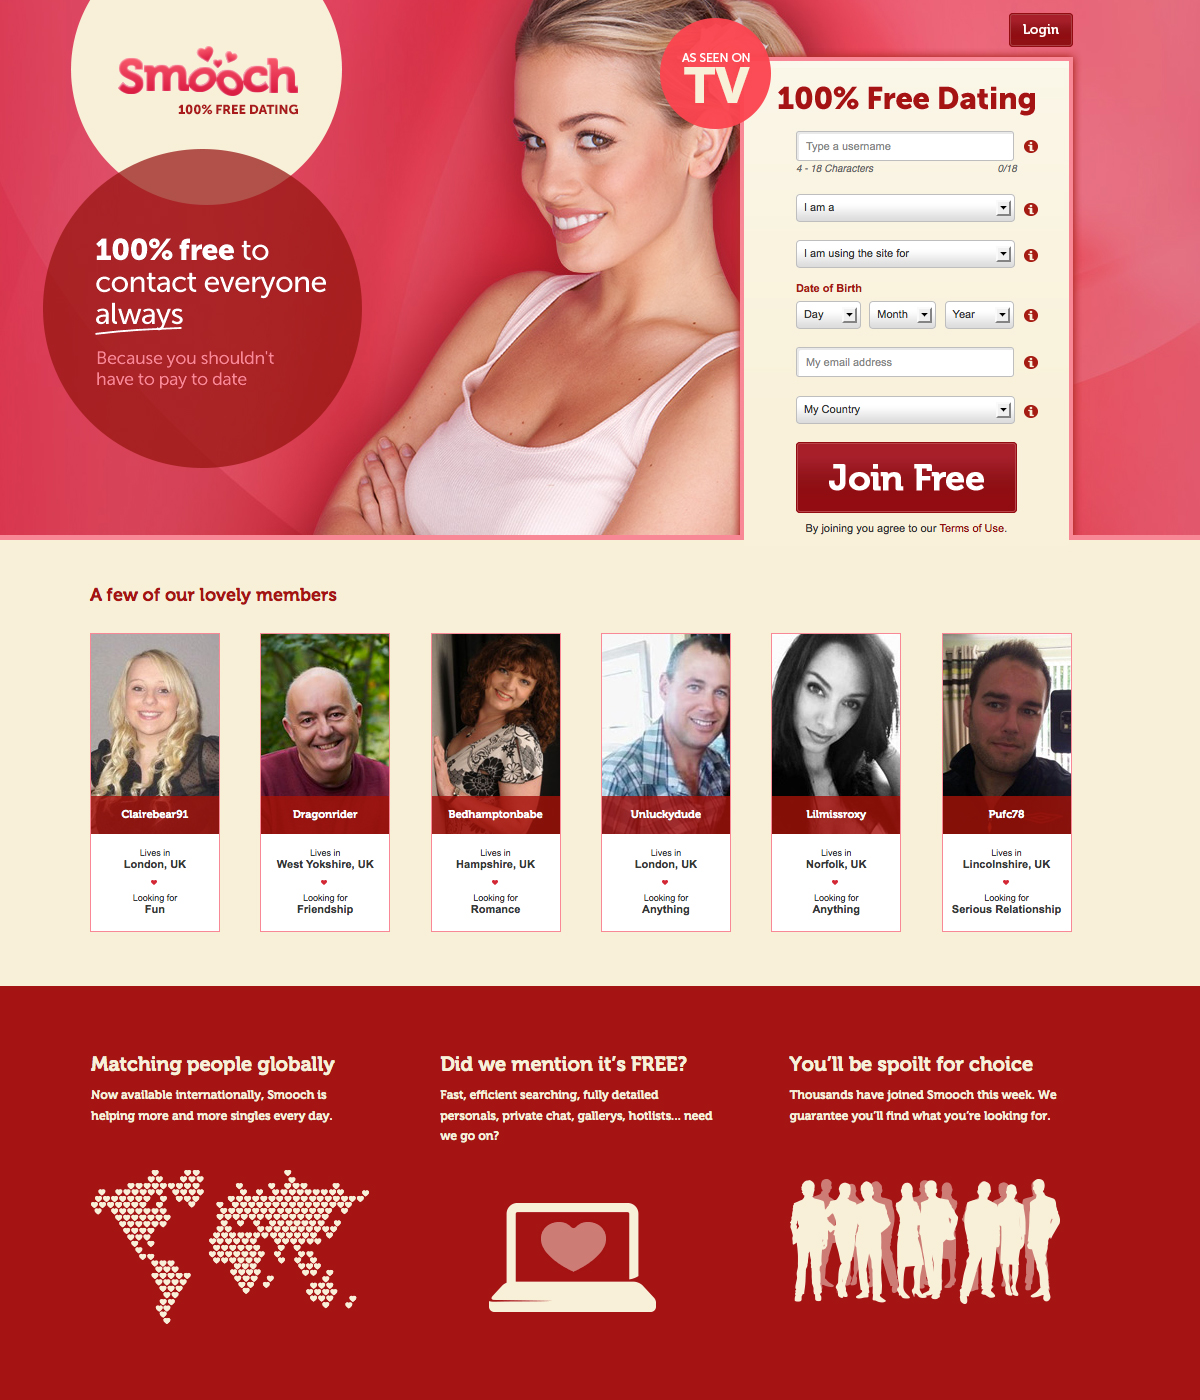 Dating websites (Faceparty etc) Digital Spy